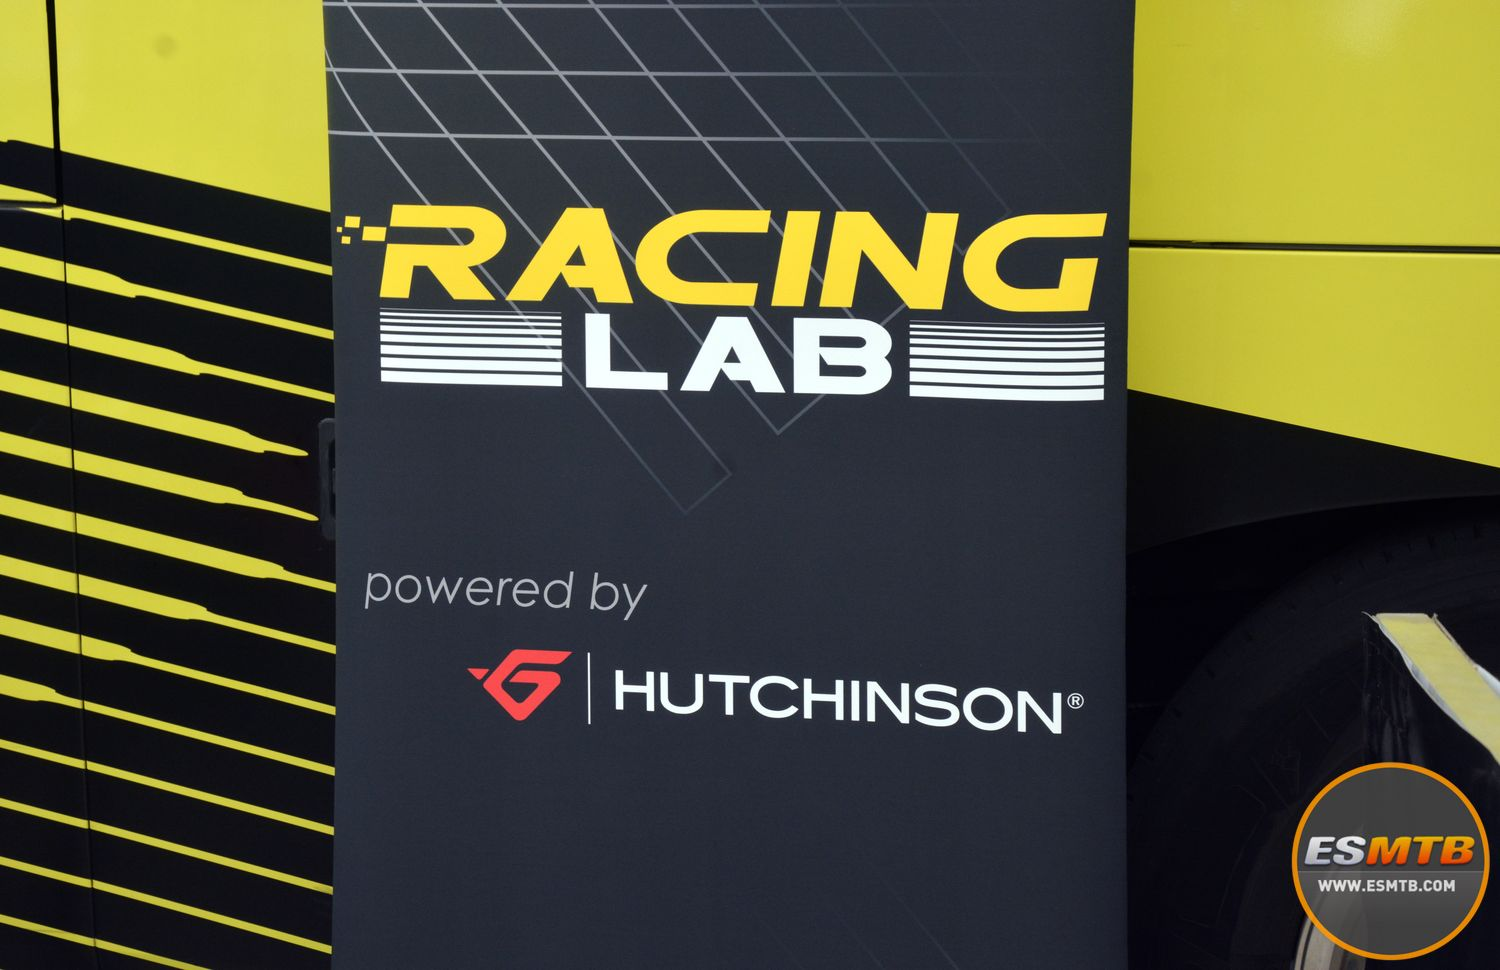 Hutchinson Racing Lab